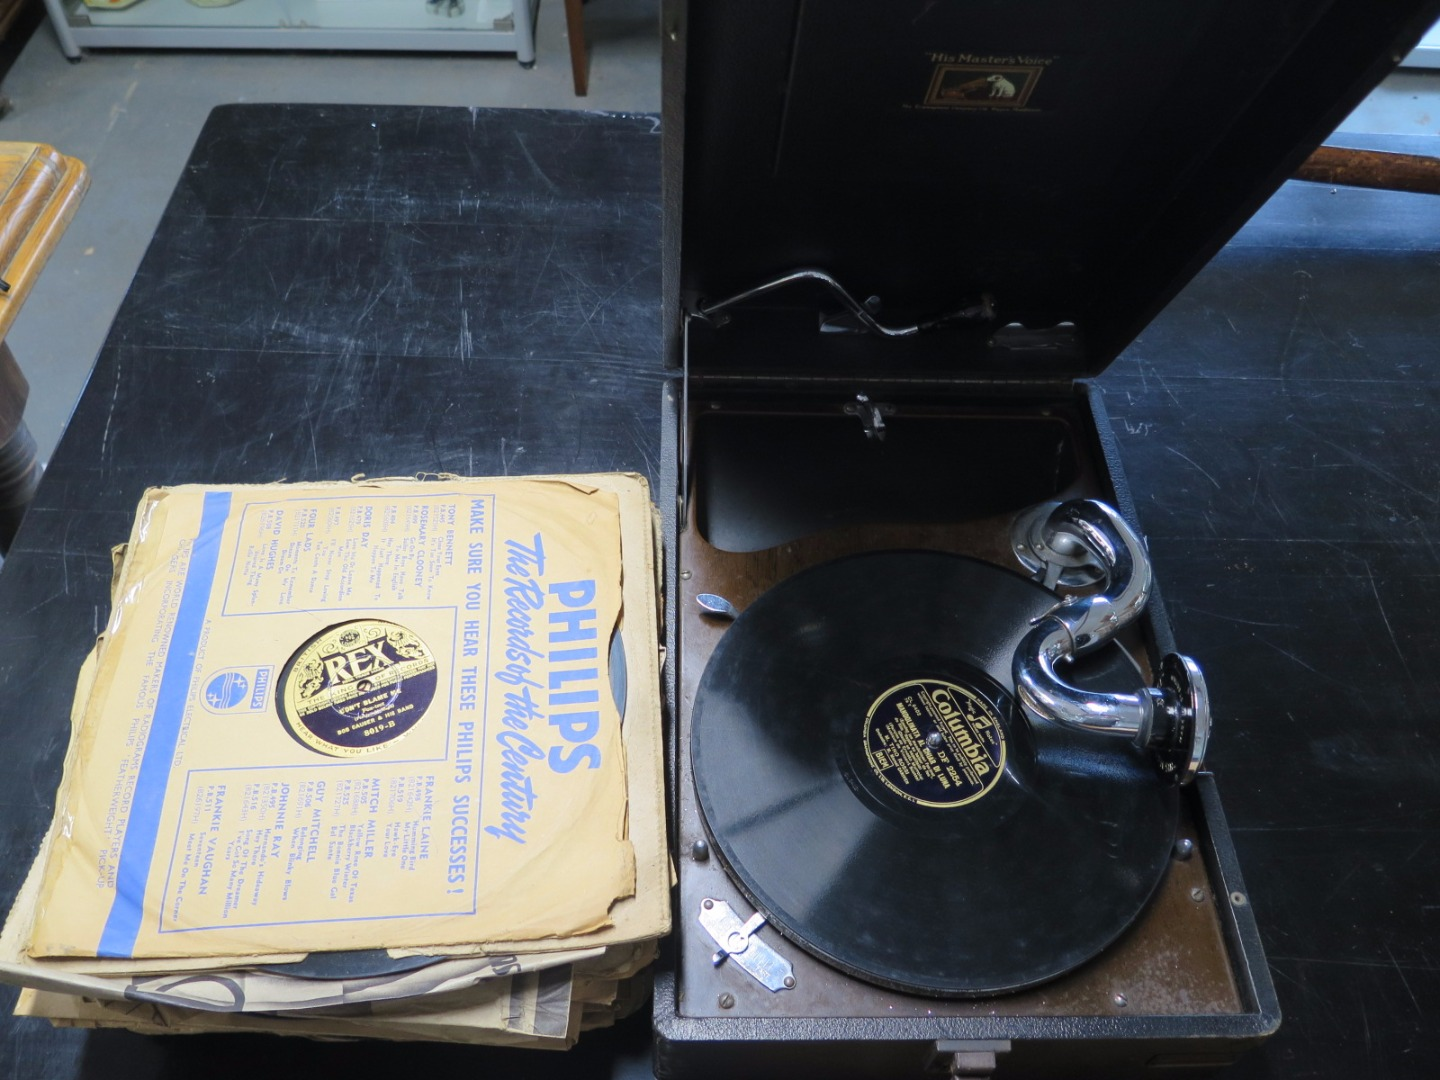 An HMV portable gramaphone with box of 78 rpm records - in working order